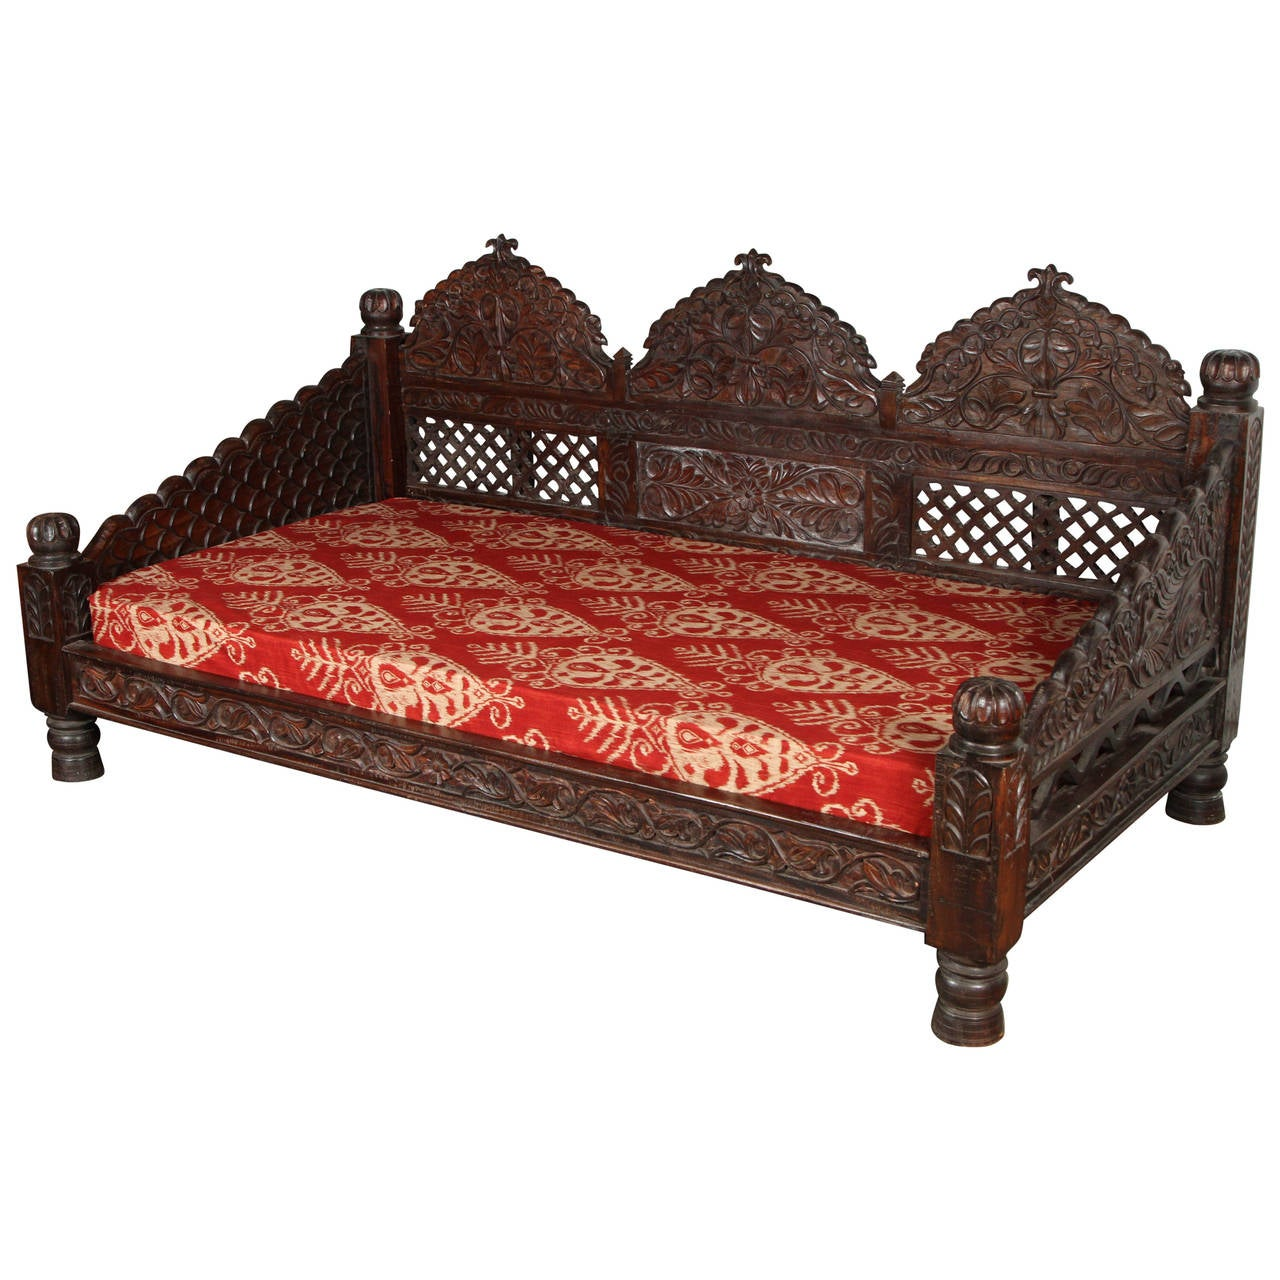 Anglo raj indian daybed for Furniture in hindi